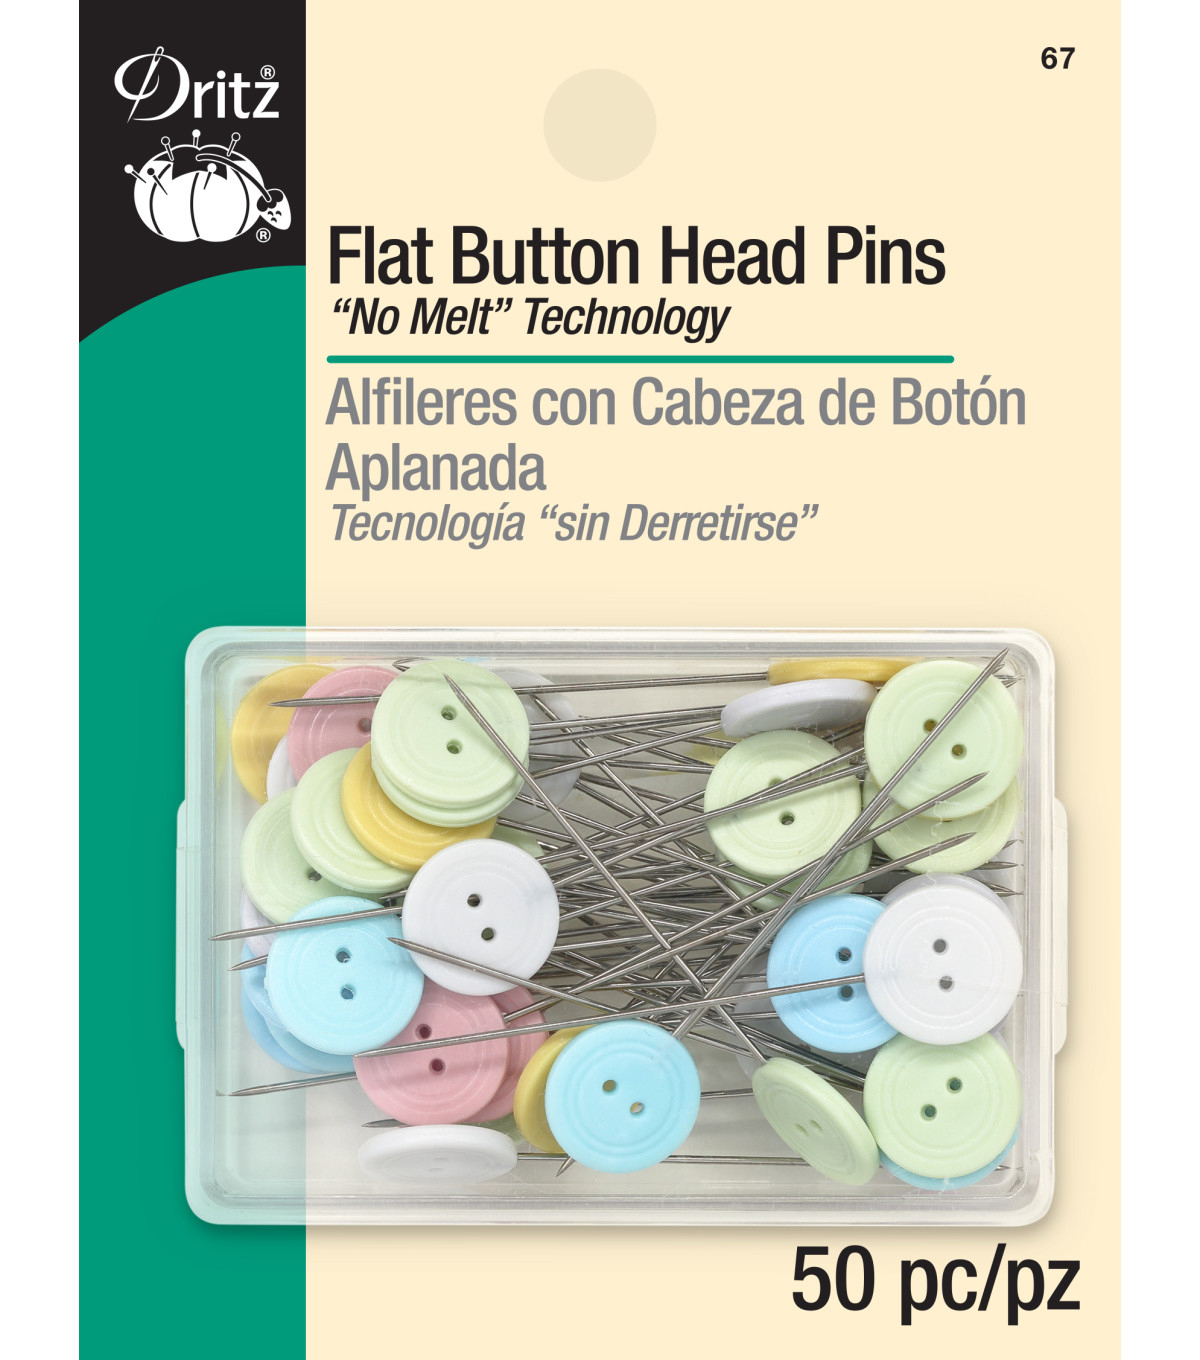 Dritz Flat Button Head Pins 50pcs